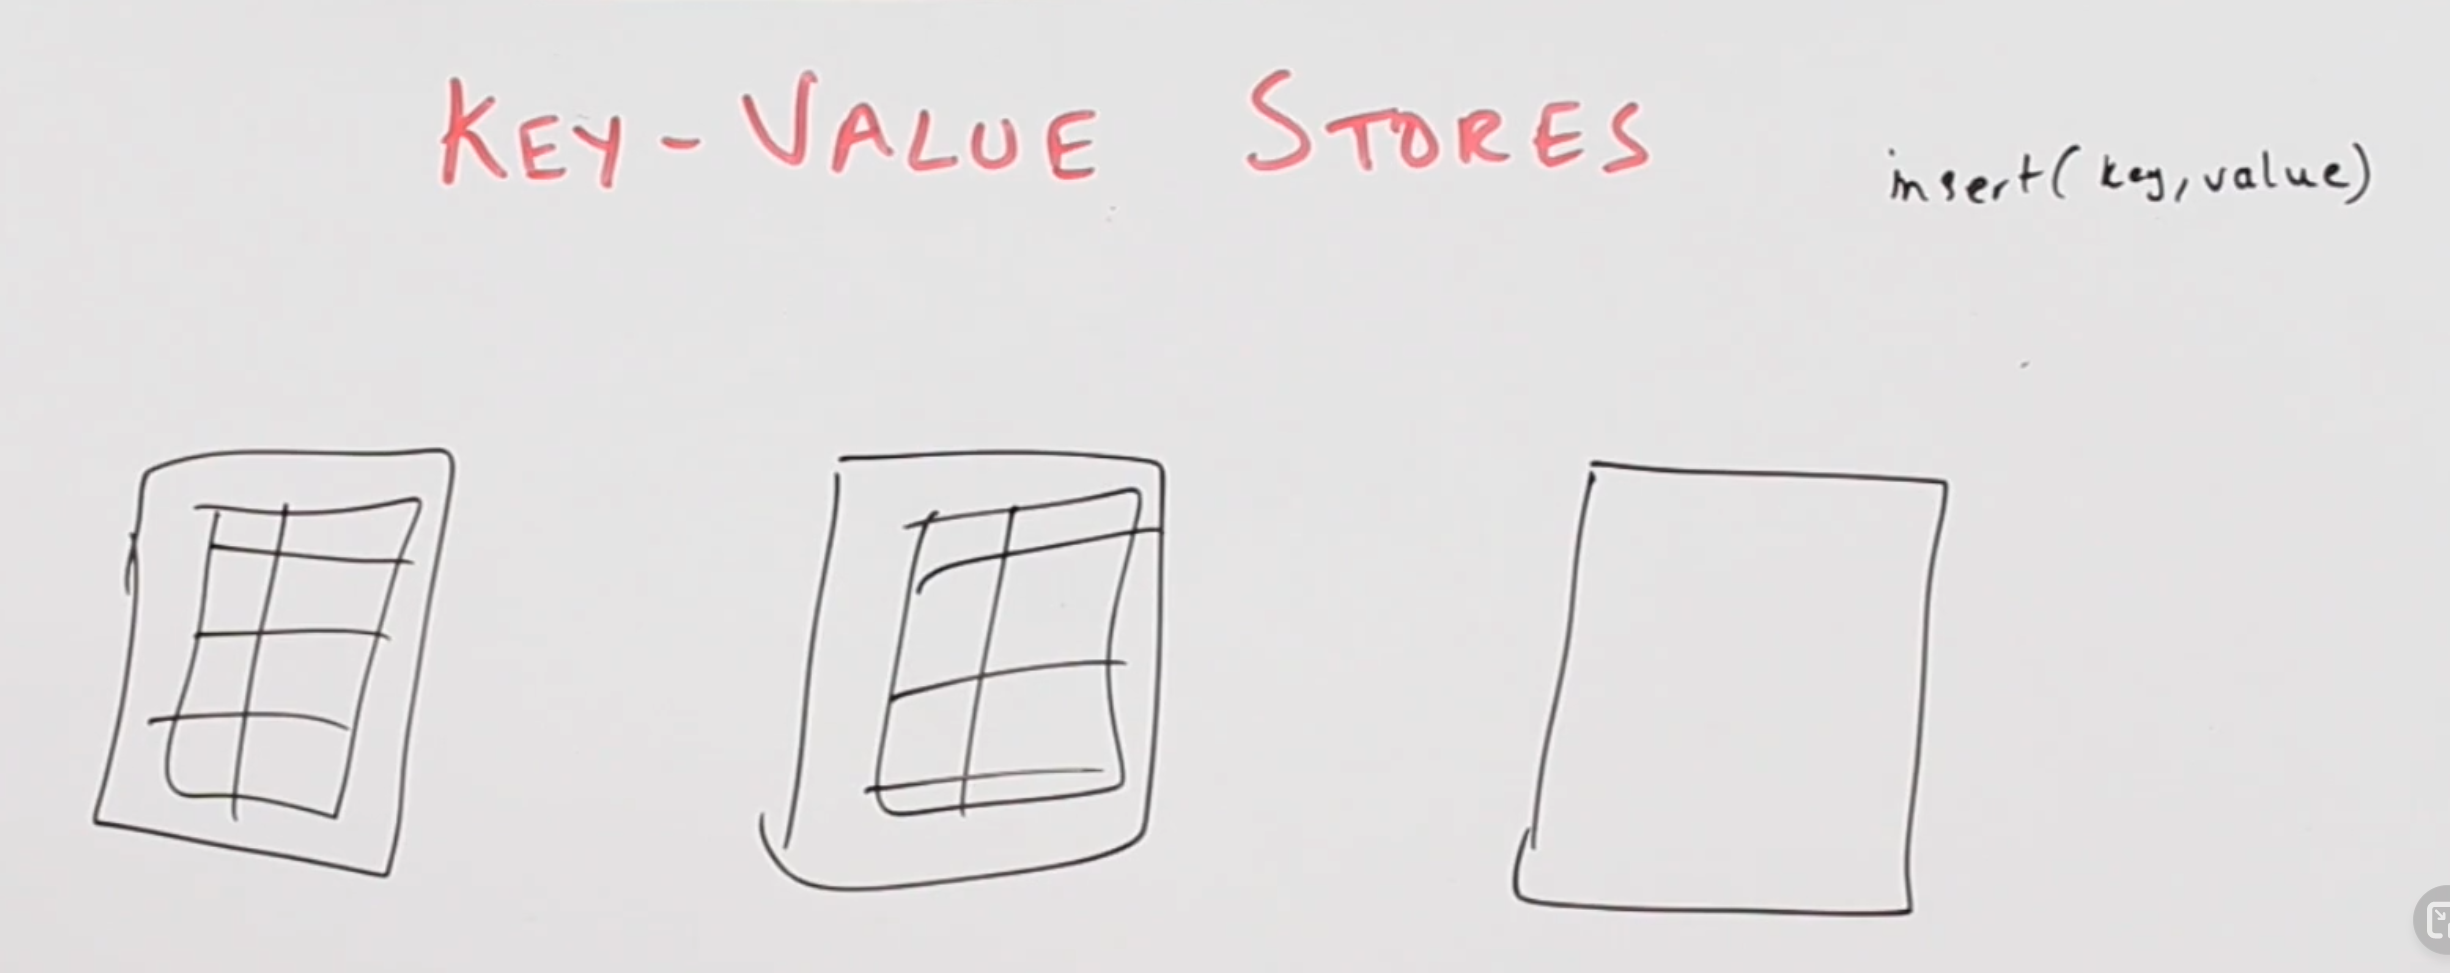 Key Value Stores